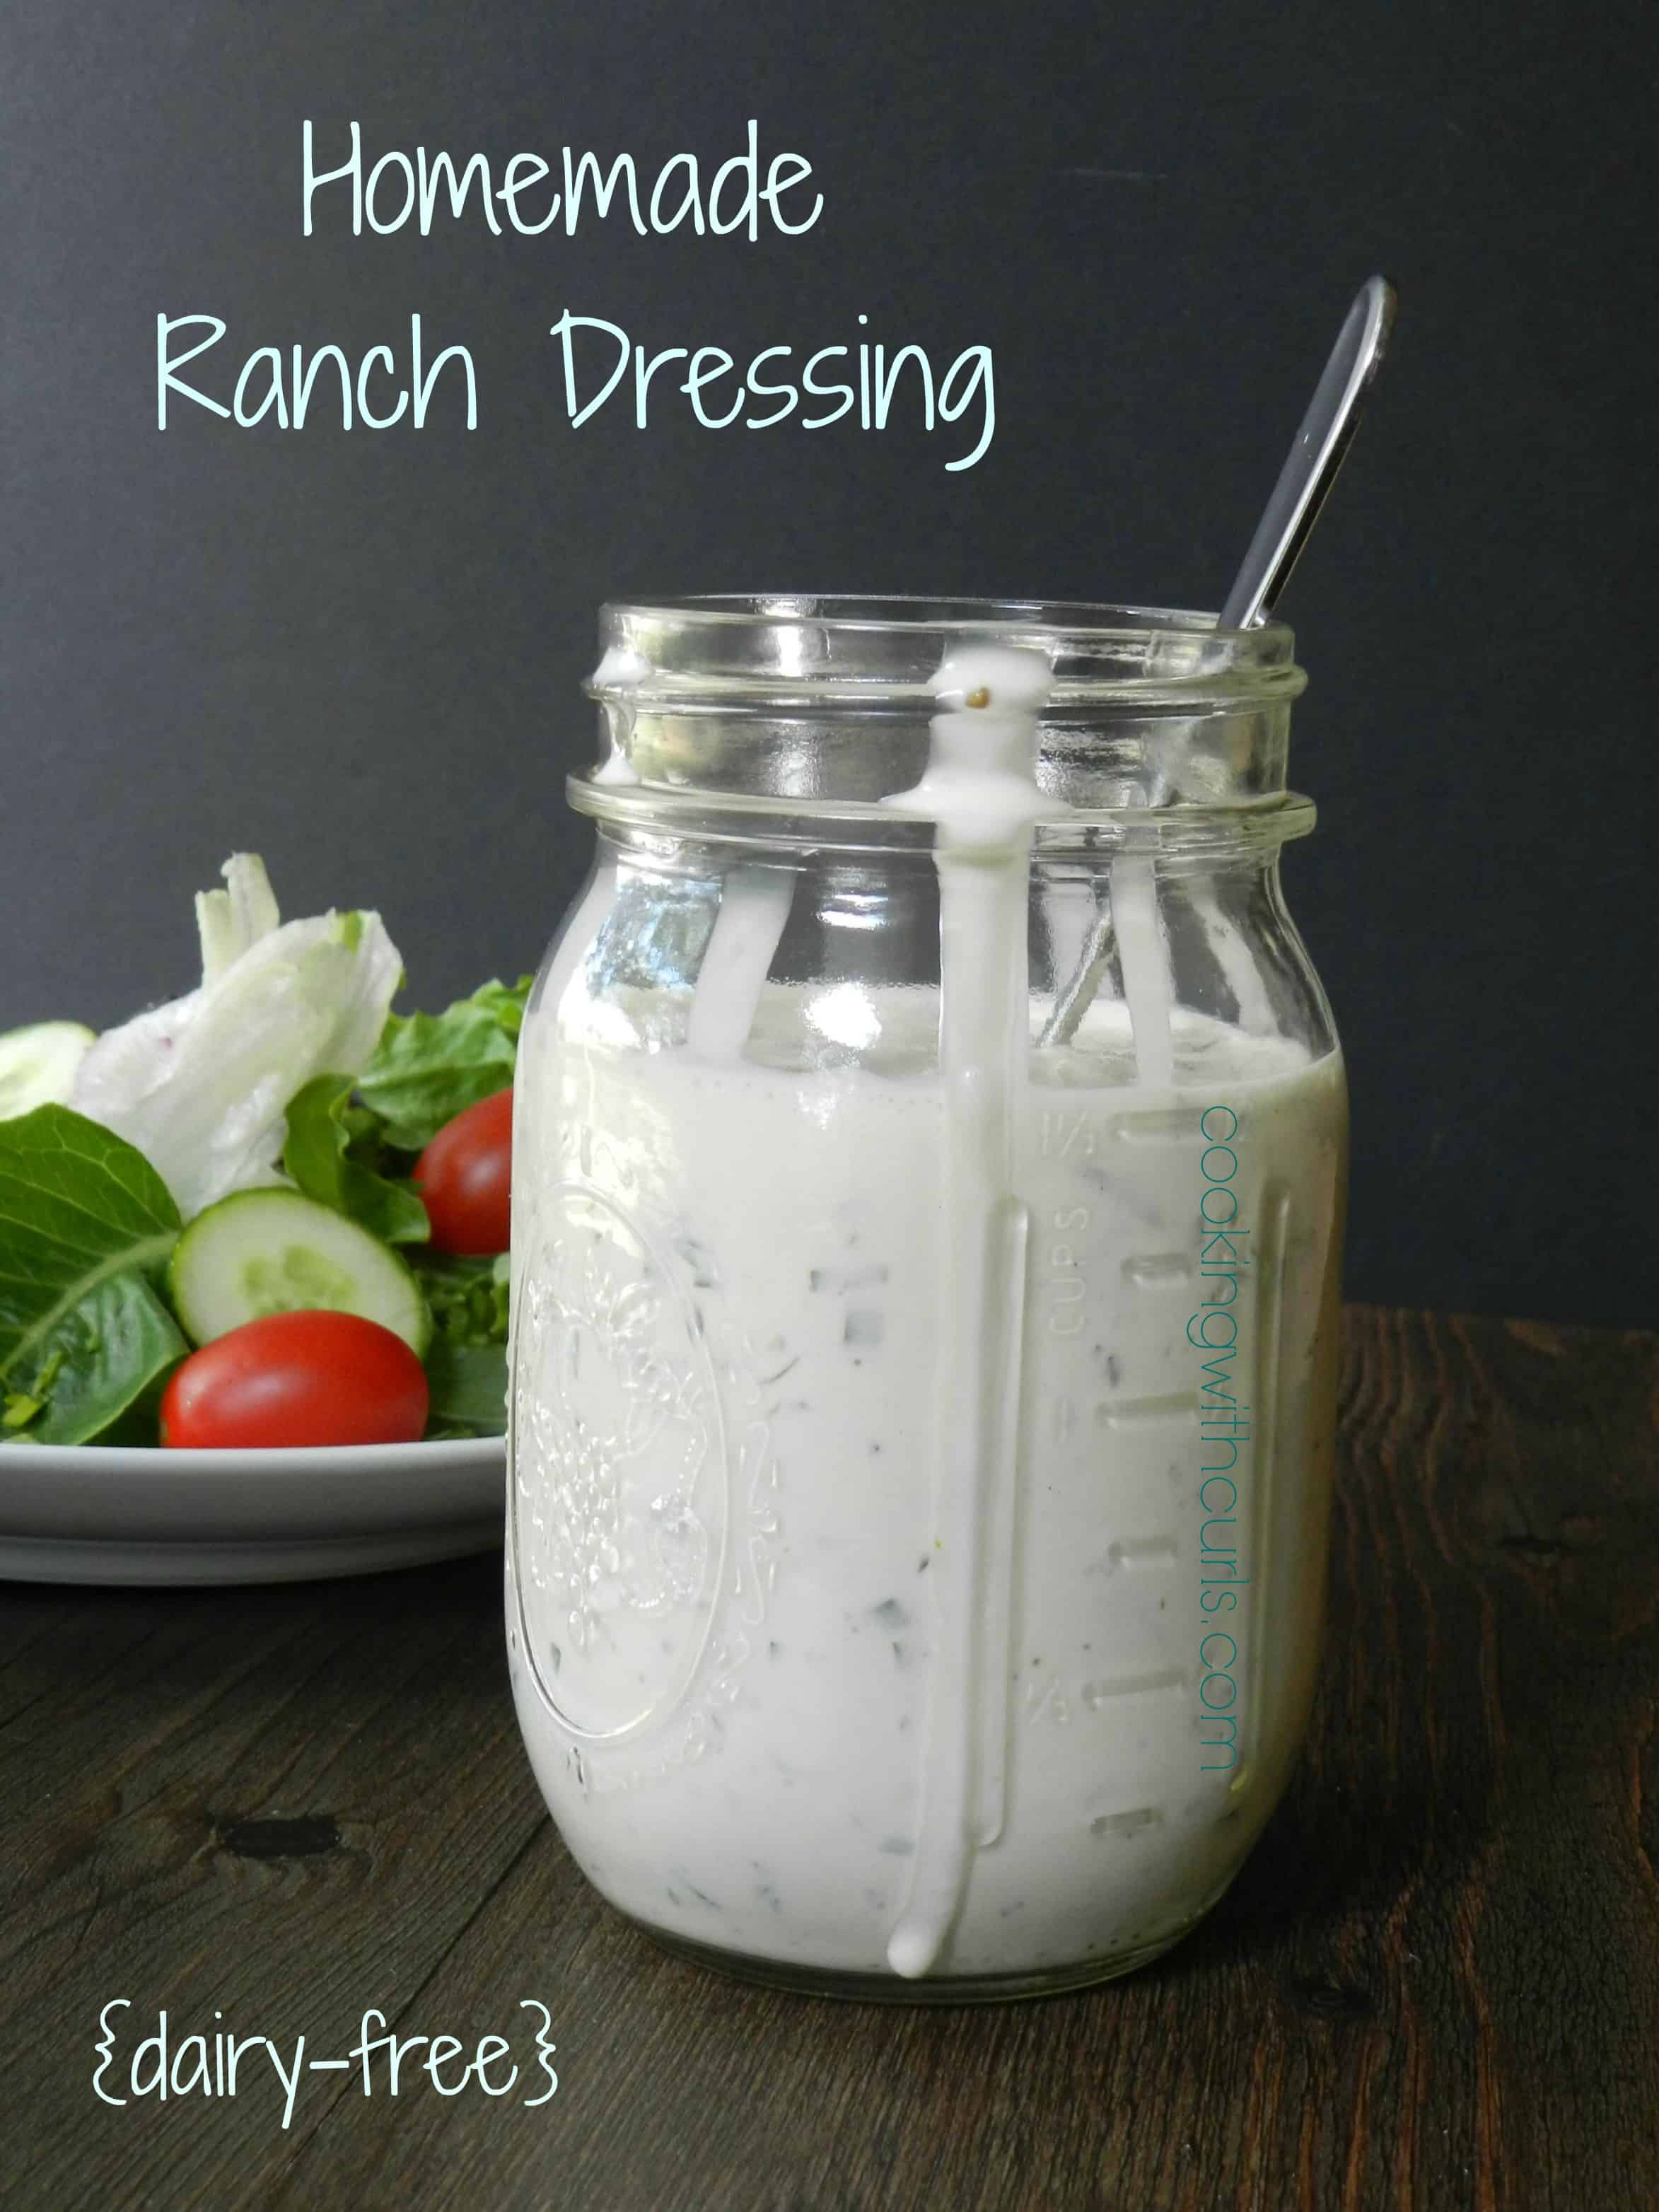 A Dairy Farm As A Technological System Teaching Practice: Homemade Ranch Dressing {dairy-free} & Substitutions